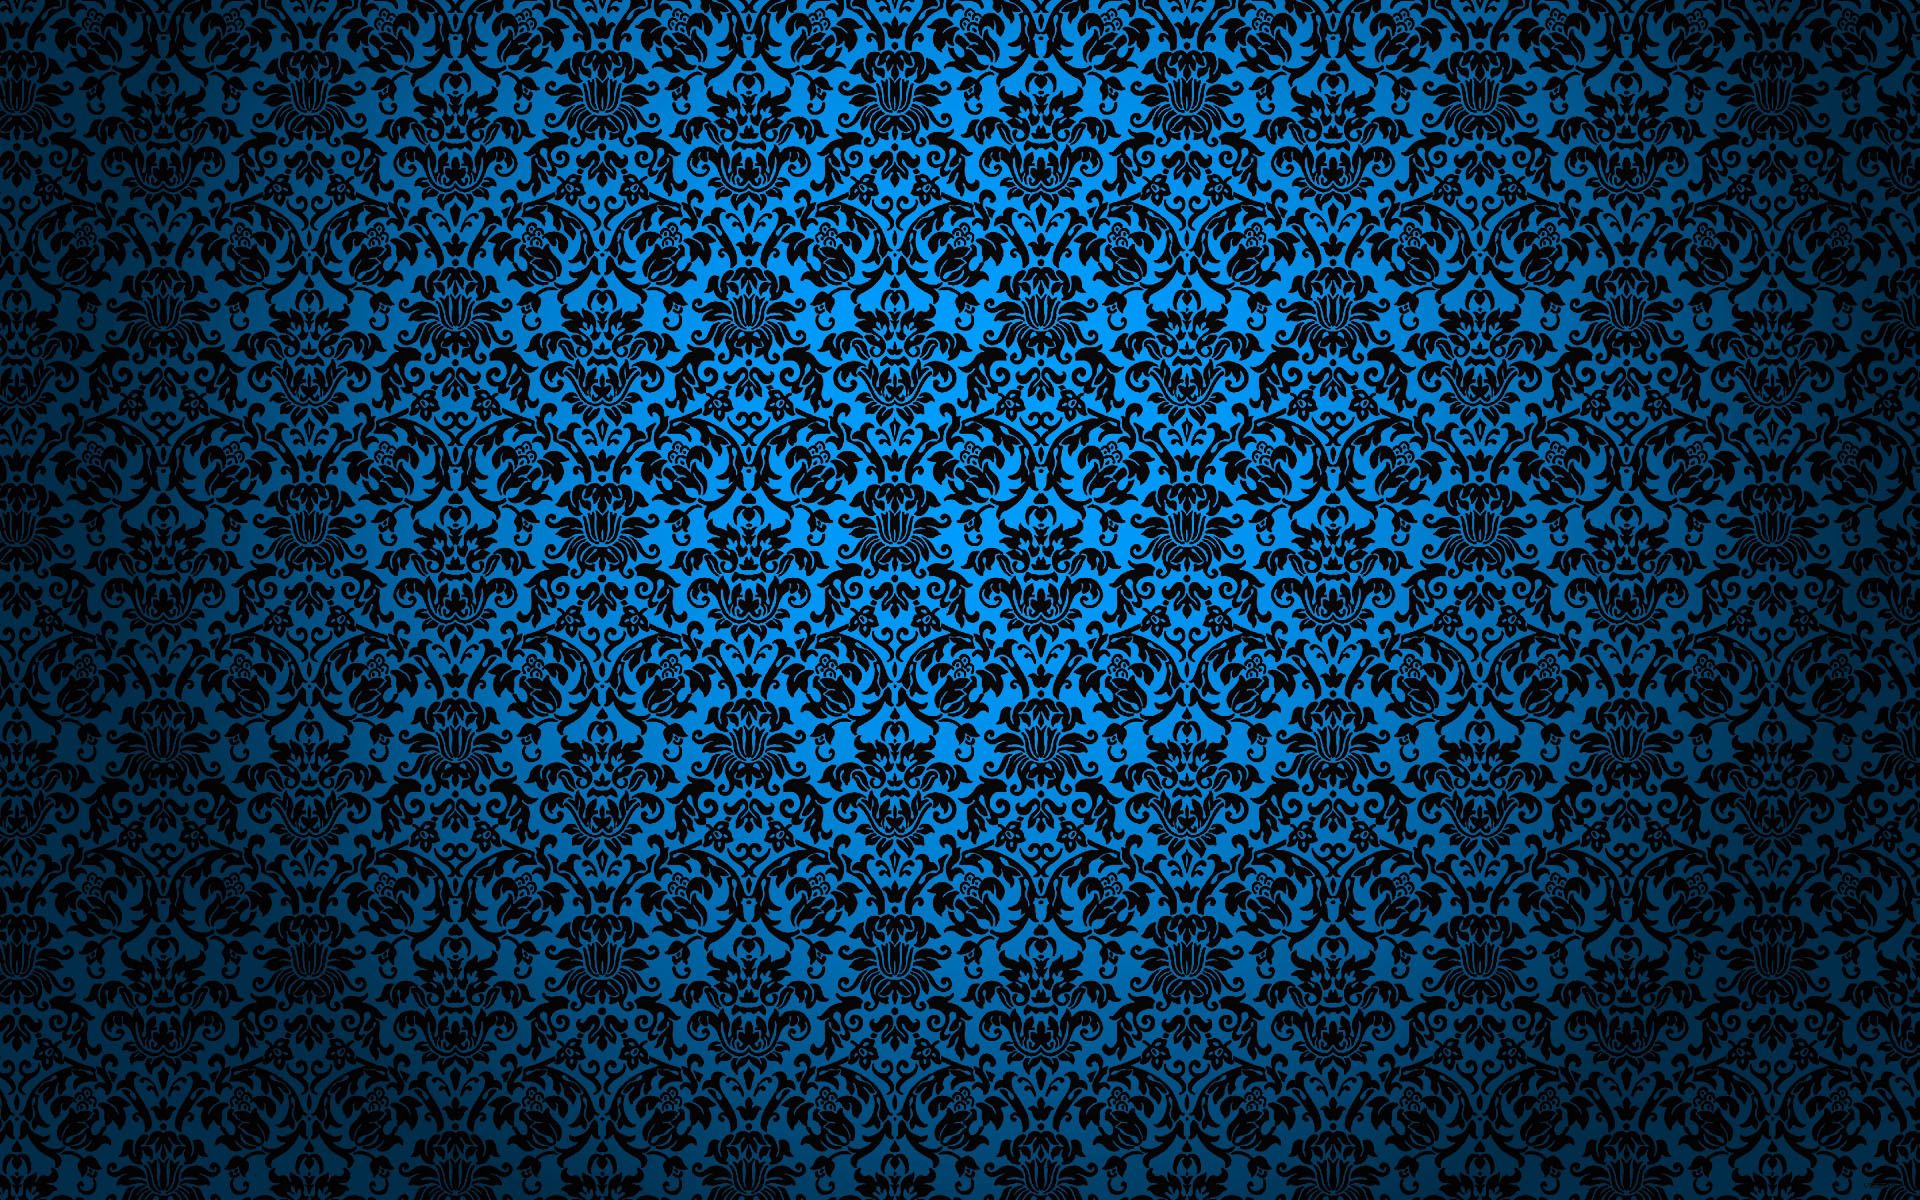 140876 download wallpaper Patterns, Texture, Textures, Shadow, Symmetry screensavers and pictures for free